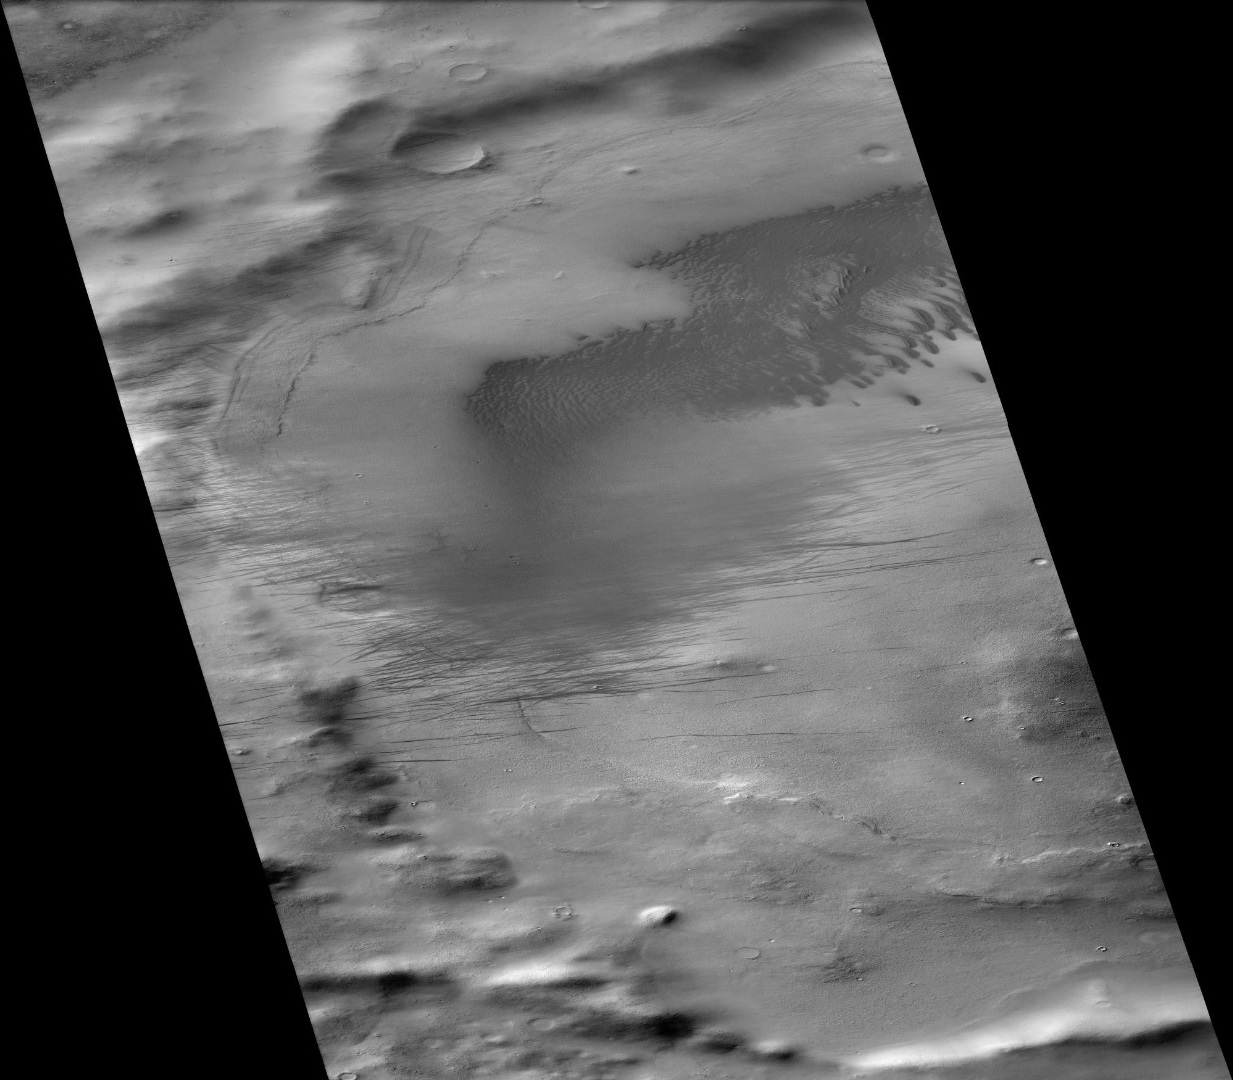 Biachini Crater, as seen by CTX camera (on Mars Reconnaissance Orbiter). Dust devil tracks and dunes are visible on the floor. The narrow, dark lines are dust devil tracks.